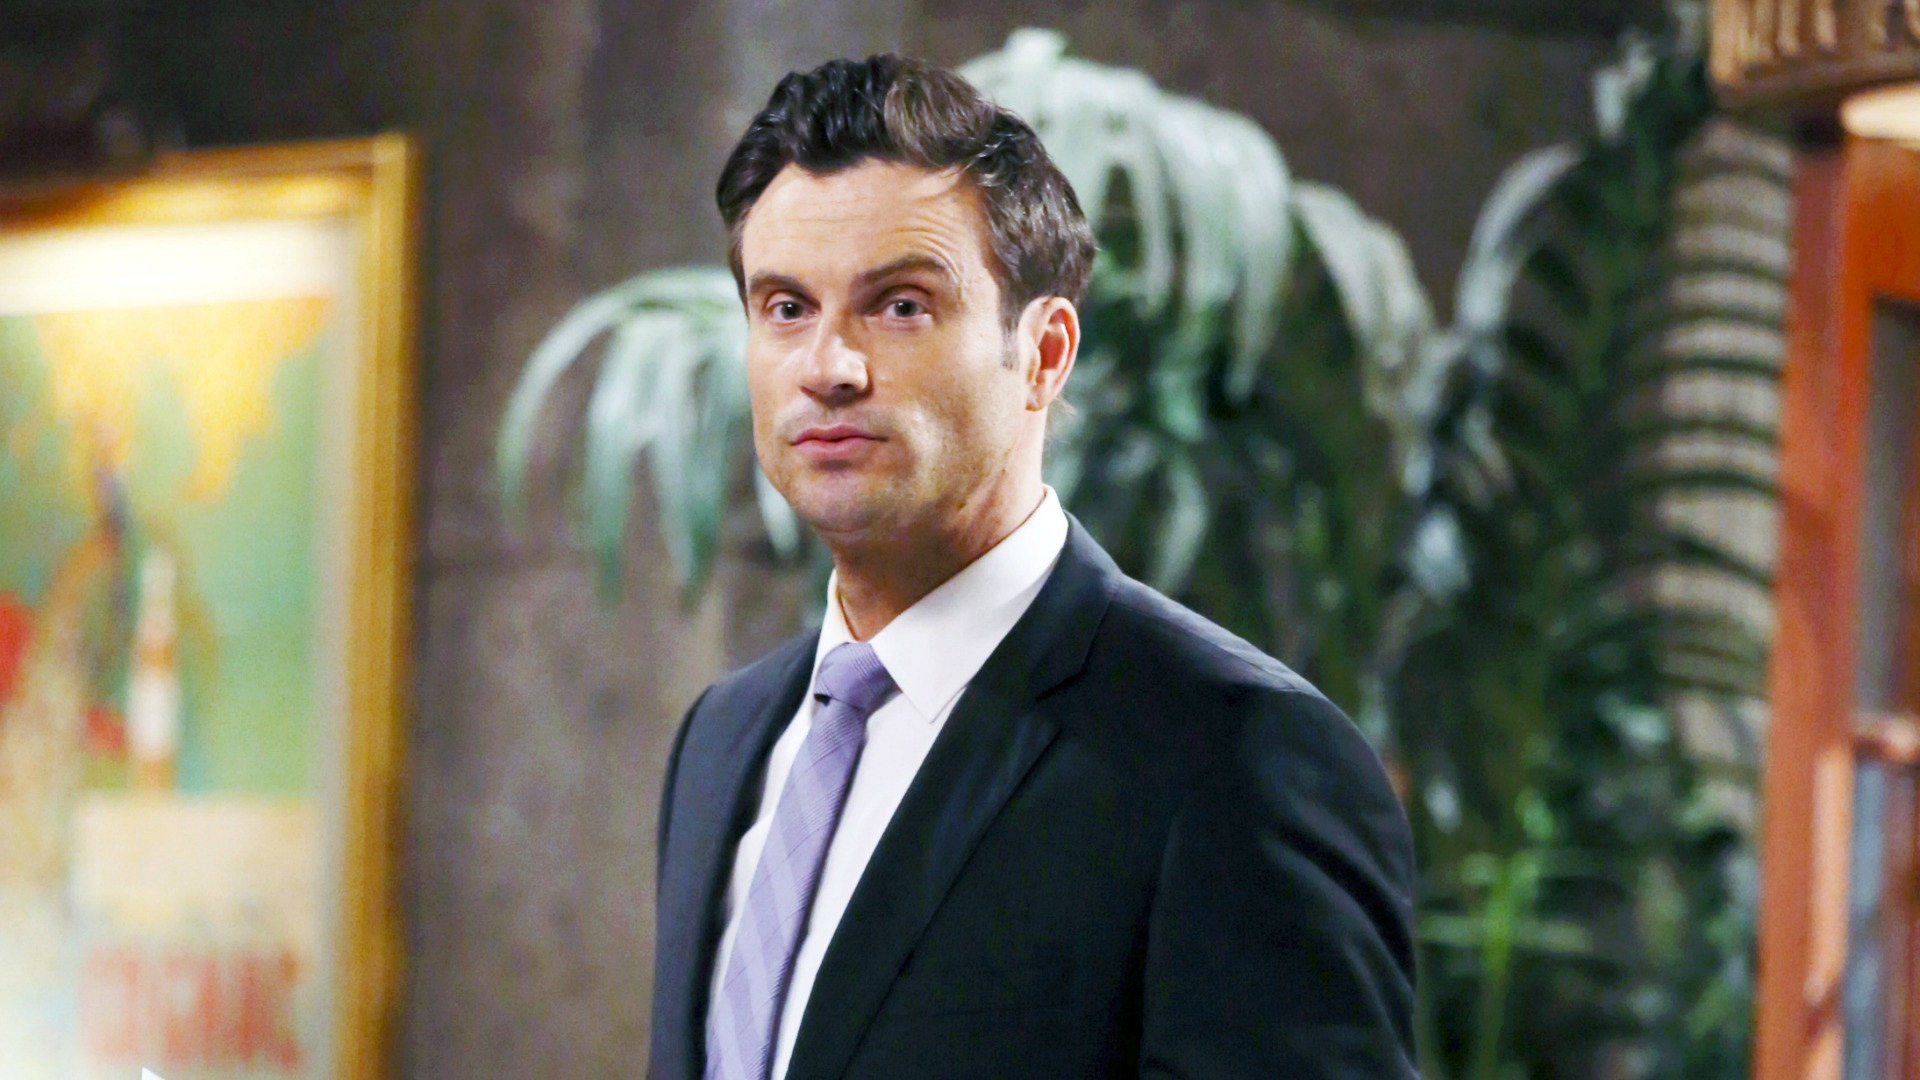 Daniel Goddard glances over at just the right moment.